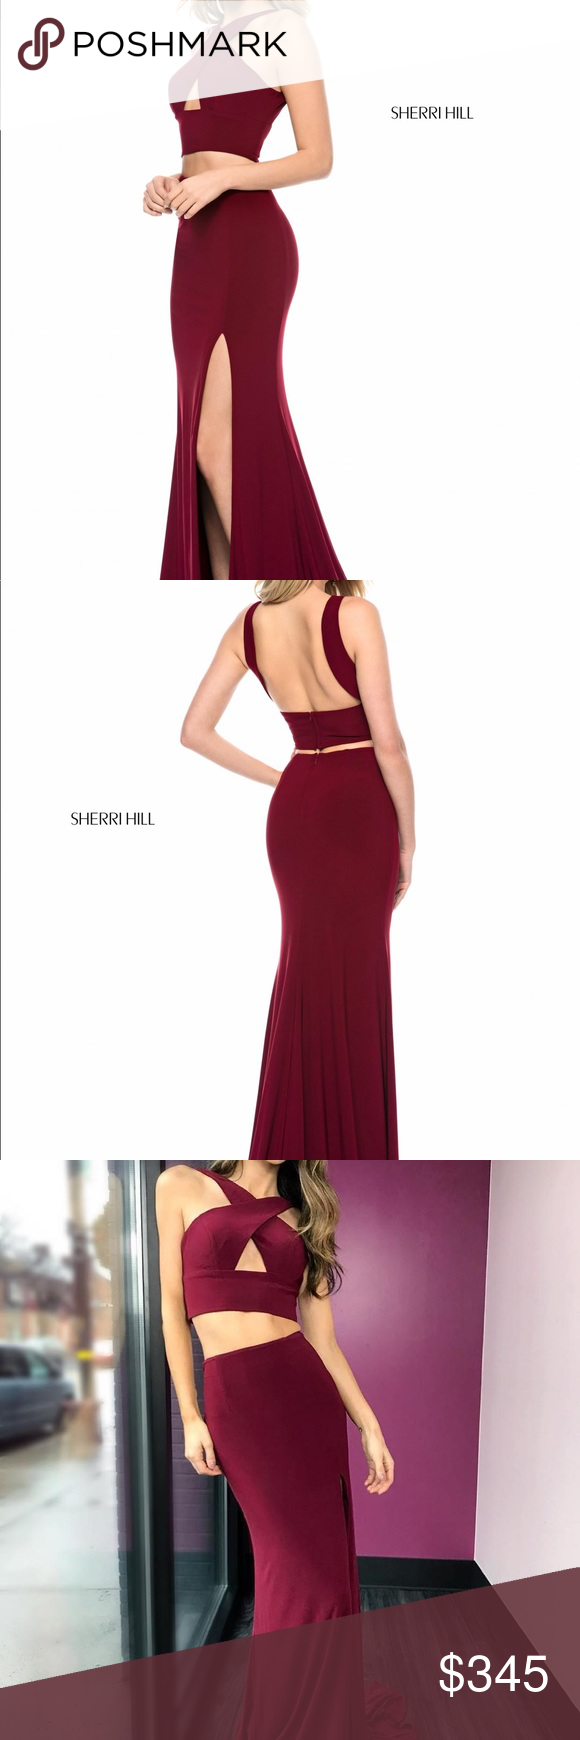 bd1166b1770 Sherri Hill 51810 Sherri Hill 51810. This two-piece dress is from her 2018